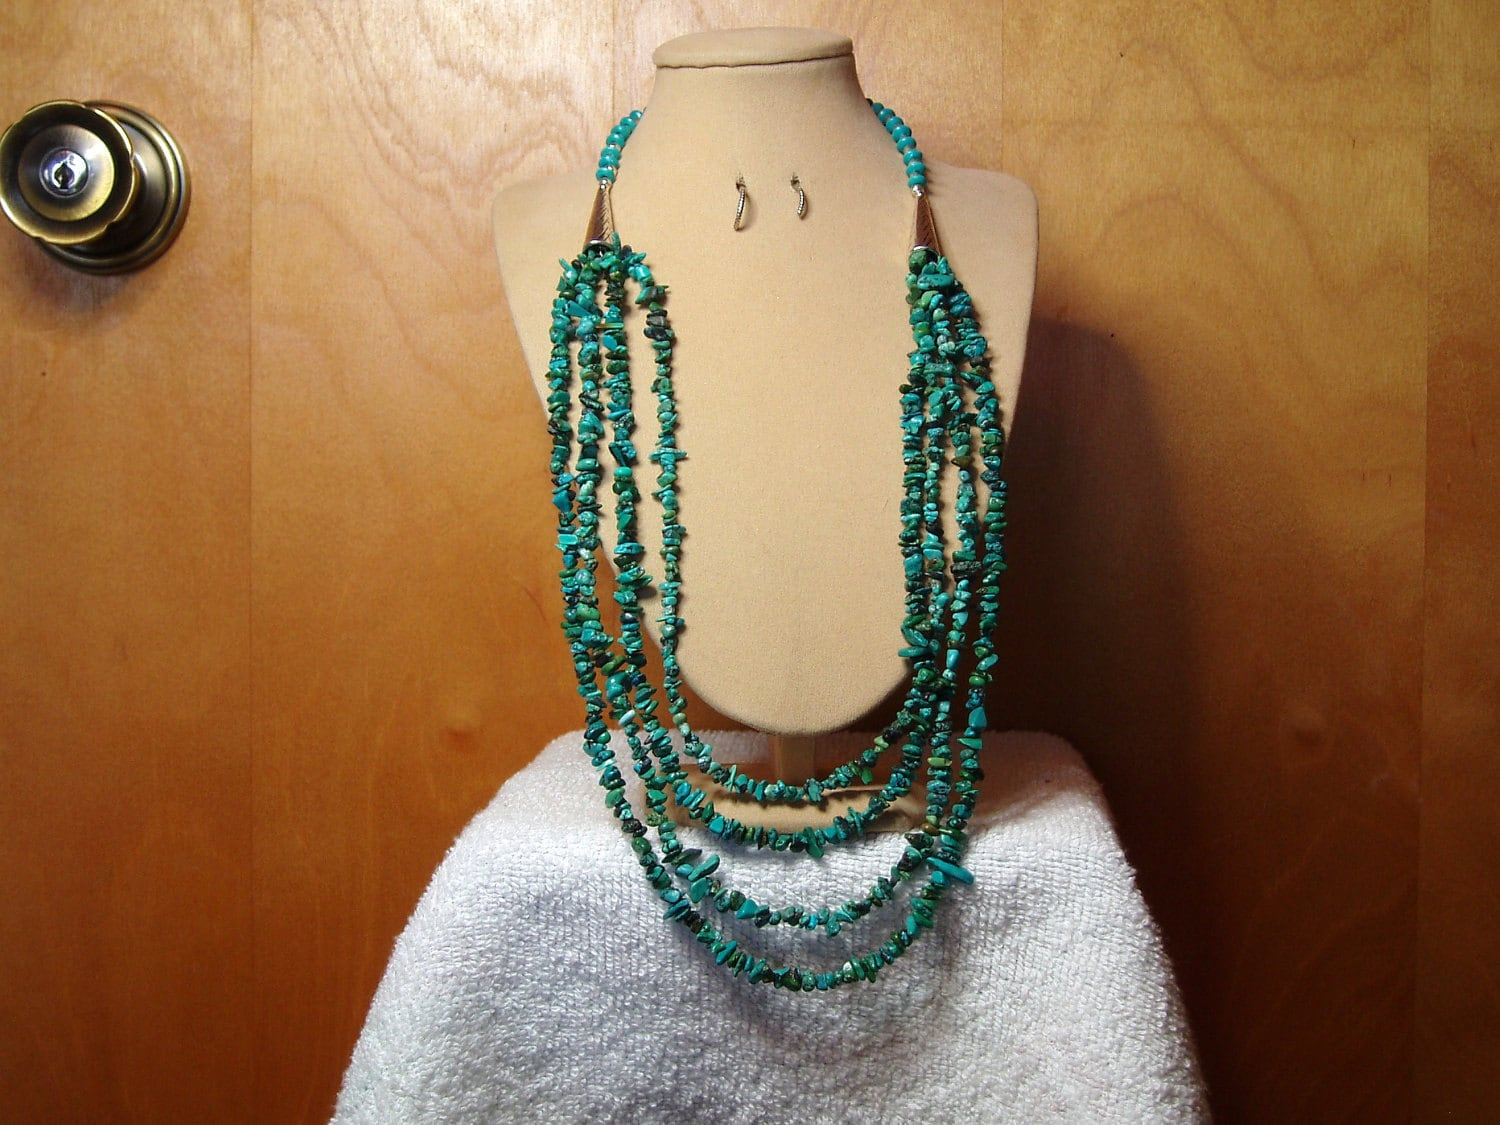 4-Strand Natural Turquoise Stone Chips and Silver Necklace